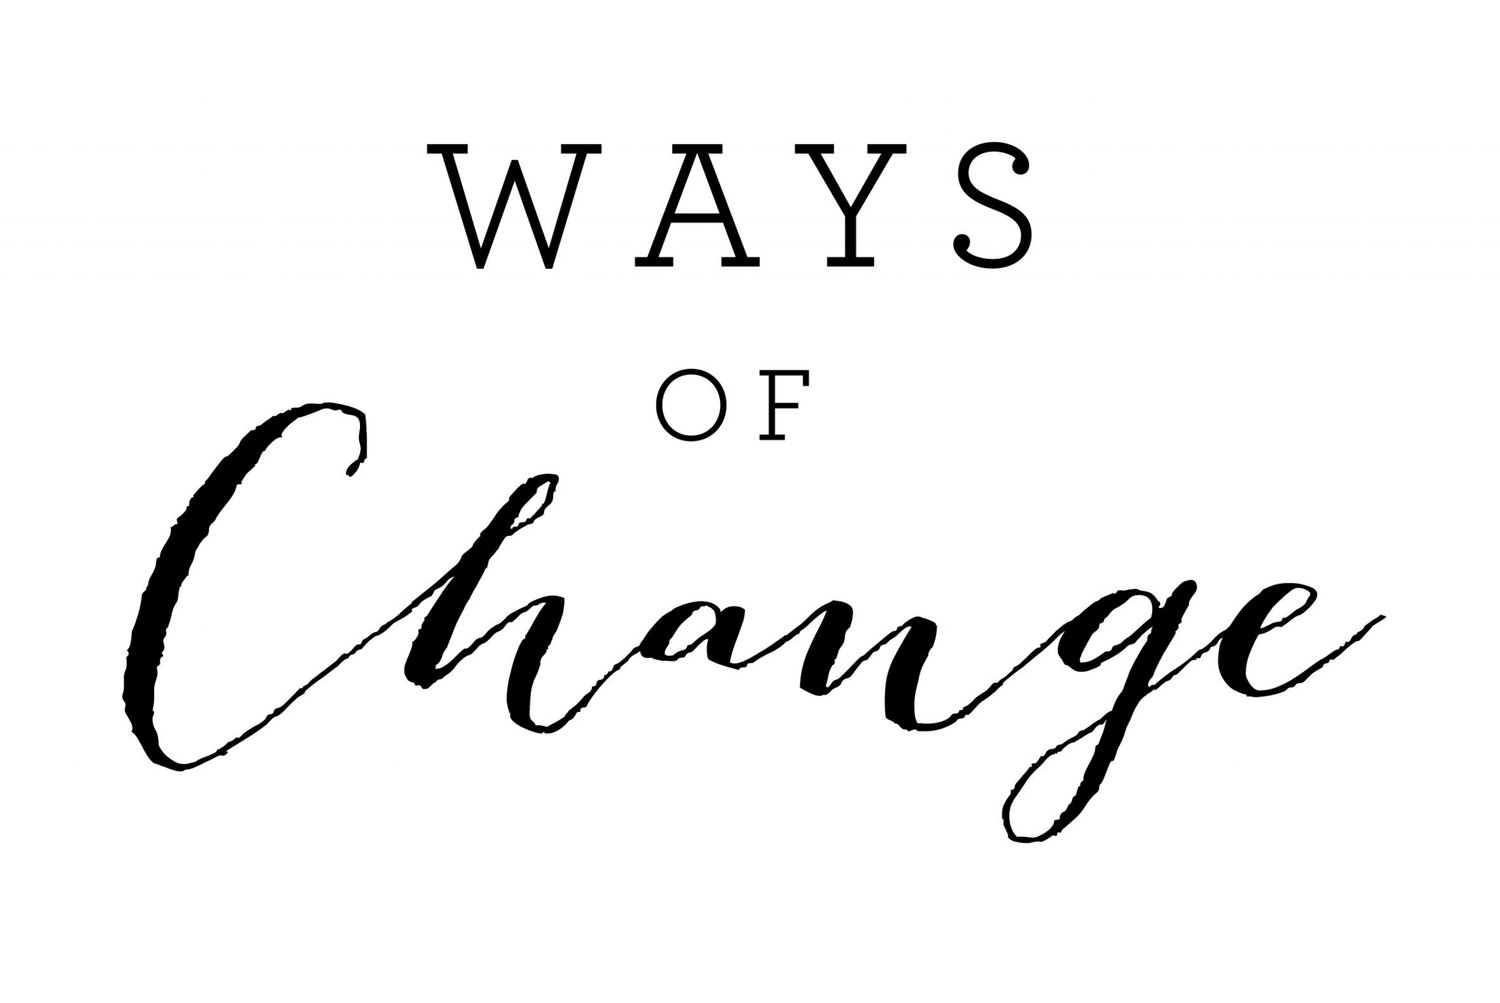 Ways Of Change